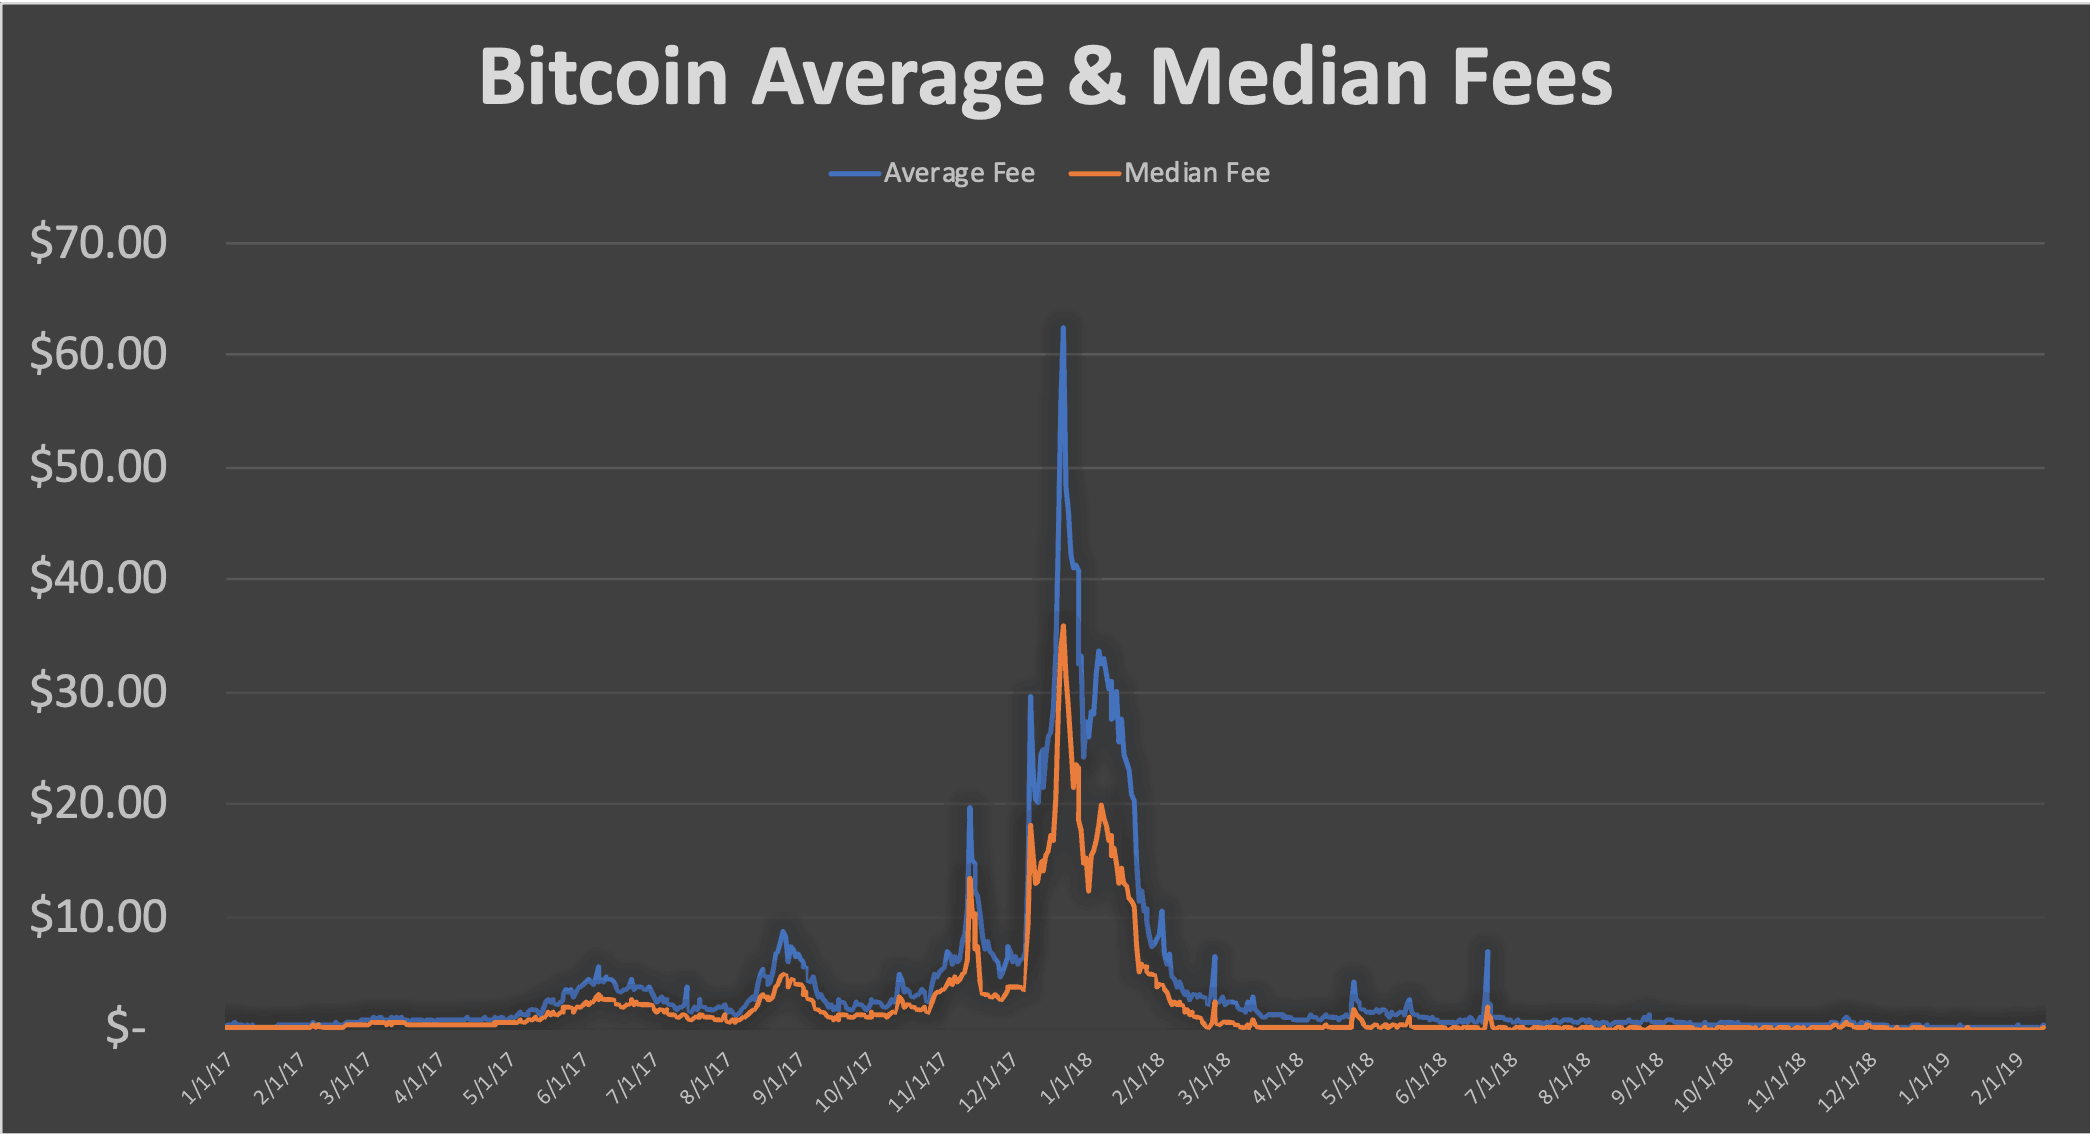 State of Blockchains Bitcoin BTC Fees - State of Blockchains: Bitcoin (BTC) Fees